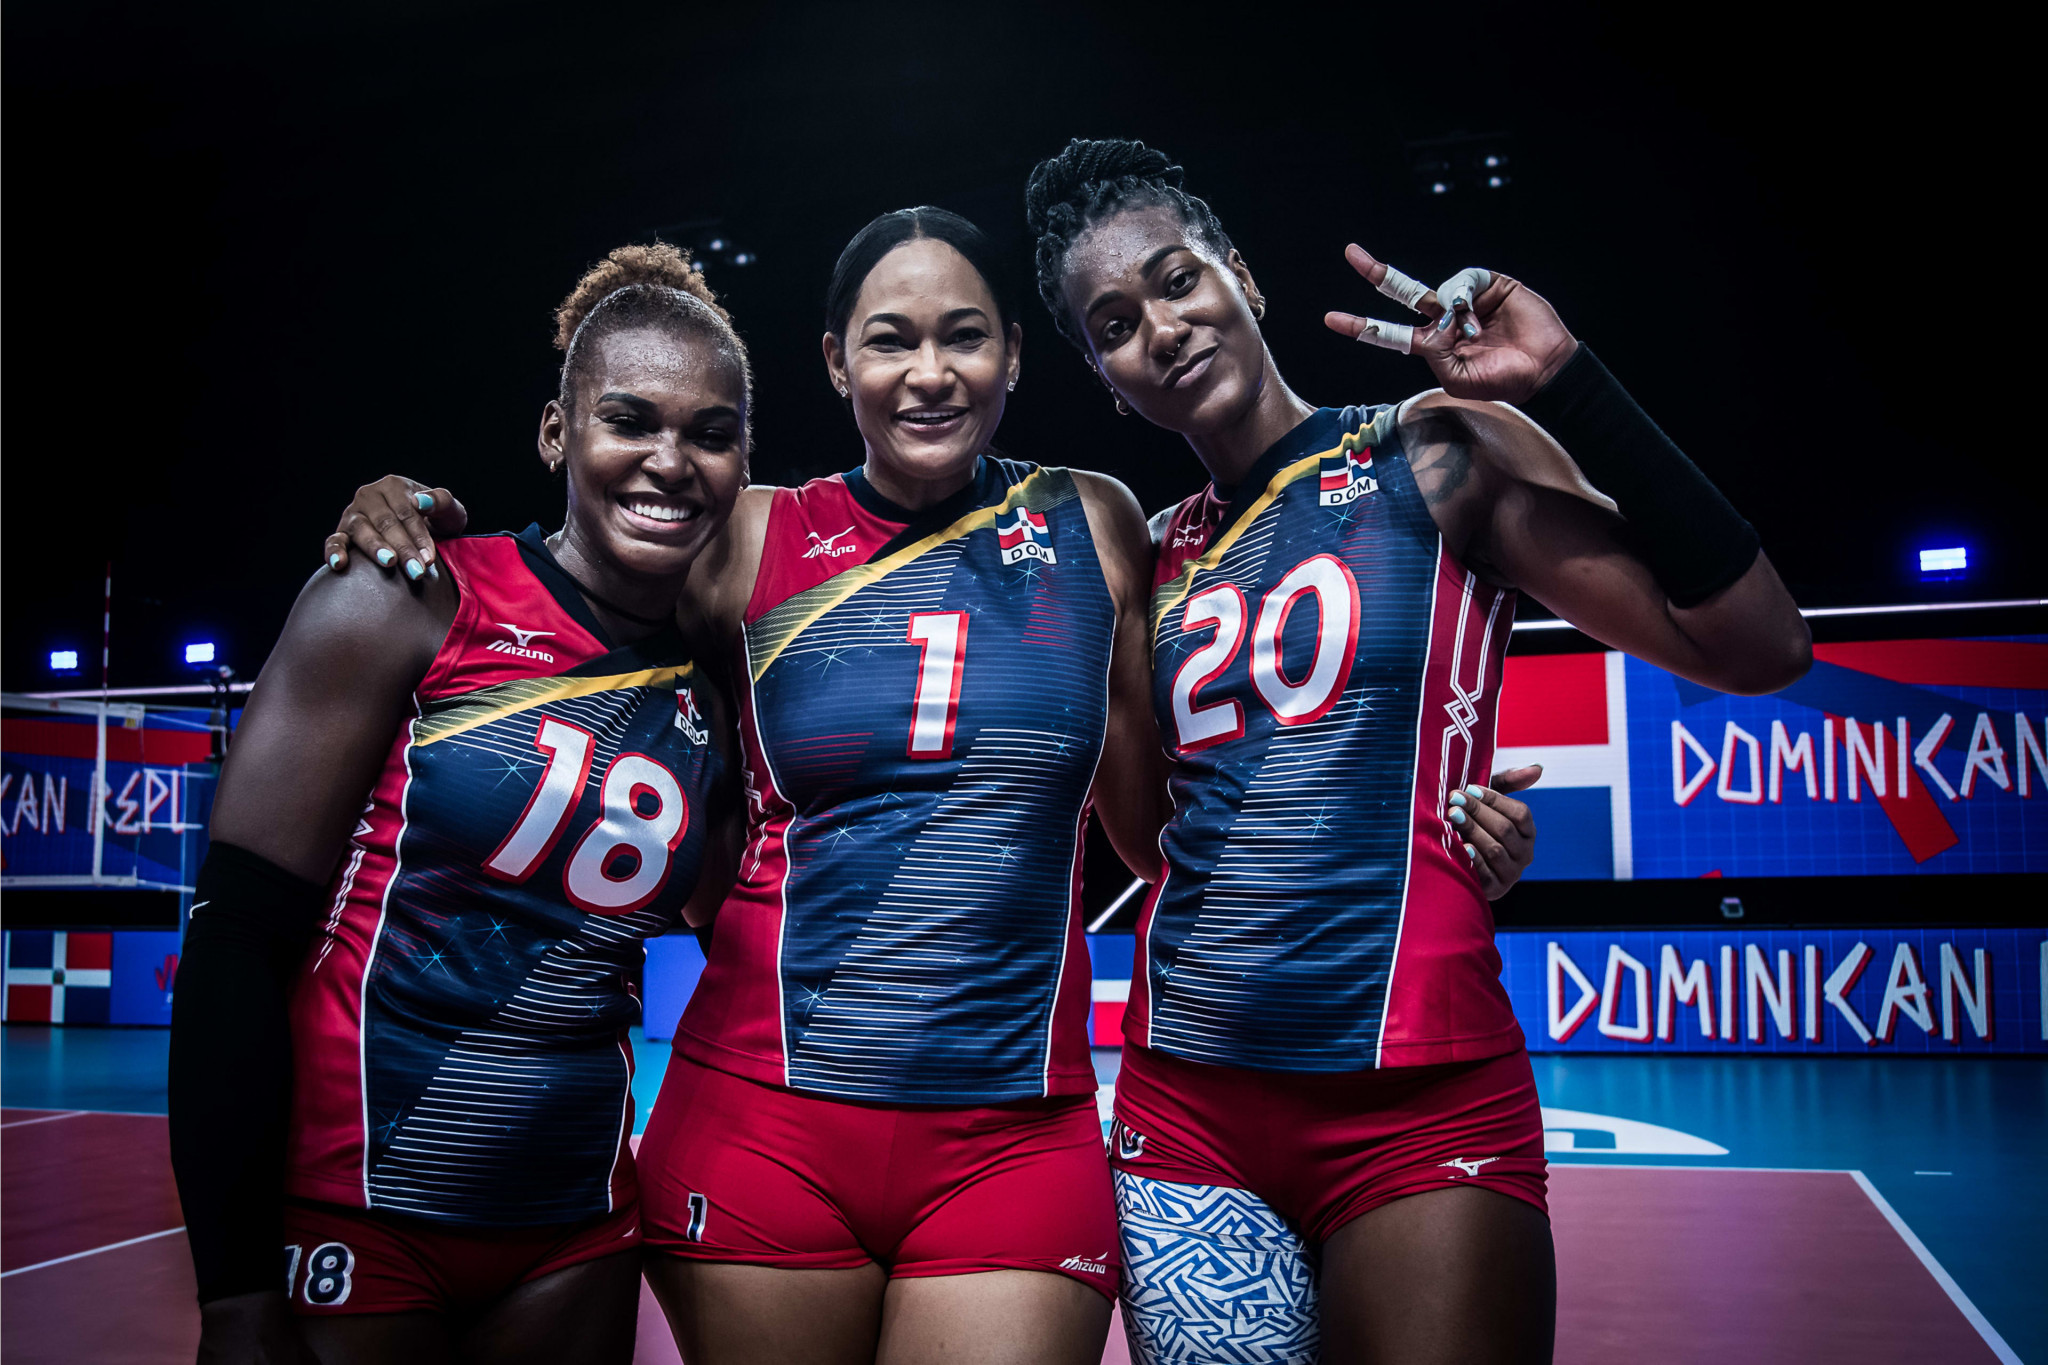 The Dominican Republic ended Turkey's unbeaten run at the Volleyball Nations League, leaving the US as the only undefeated side ©Volleyball World